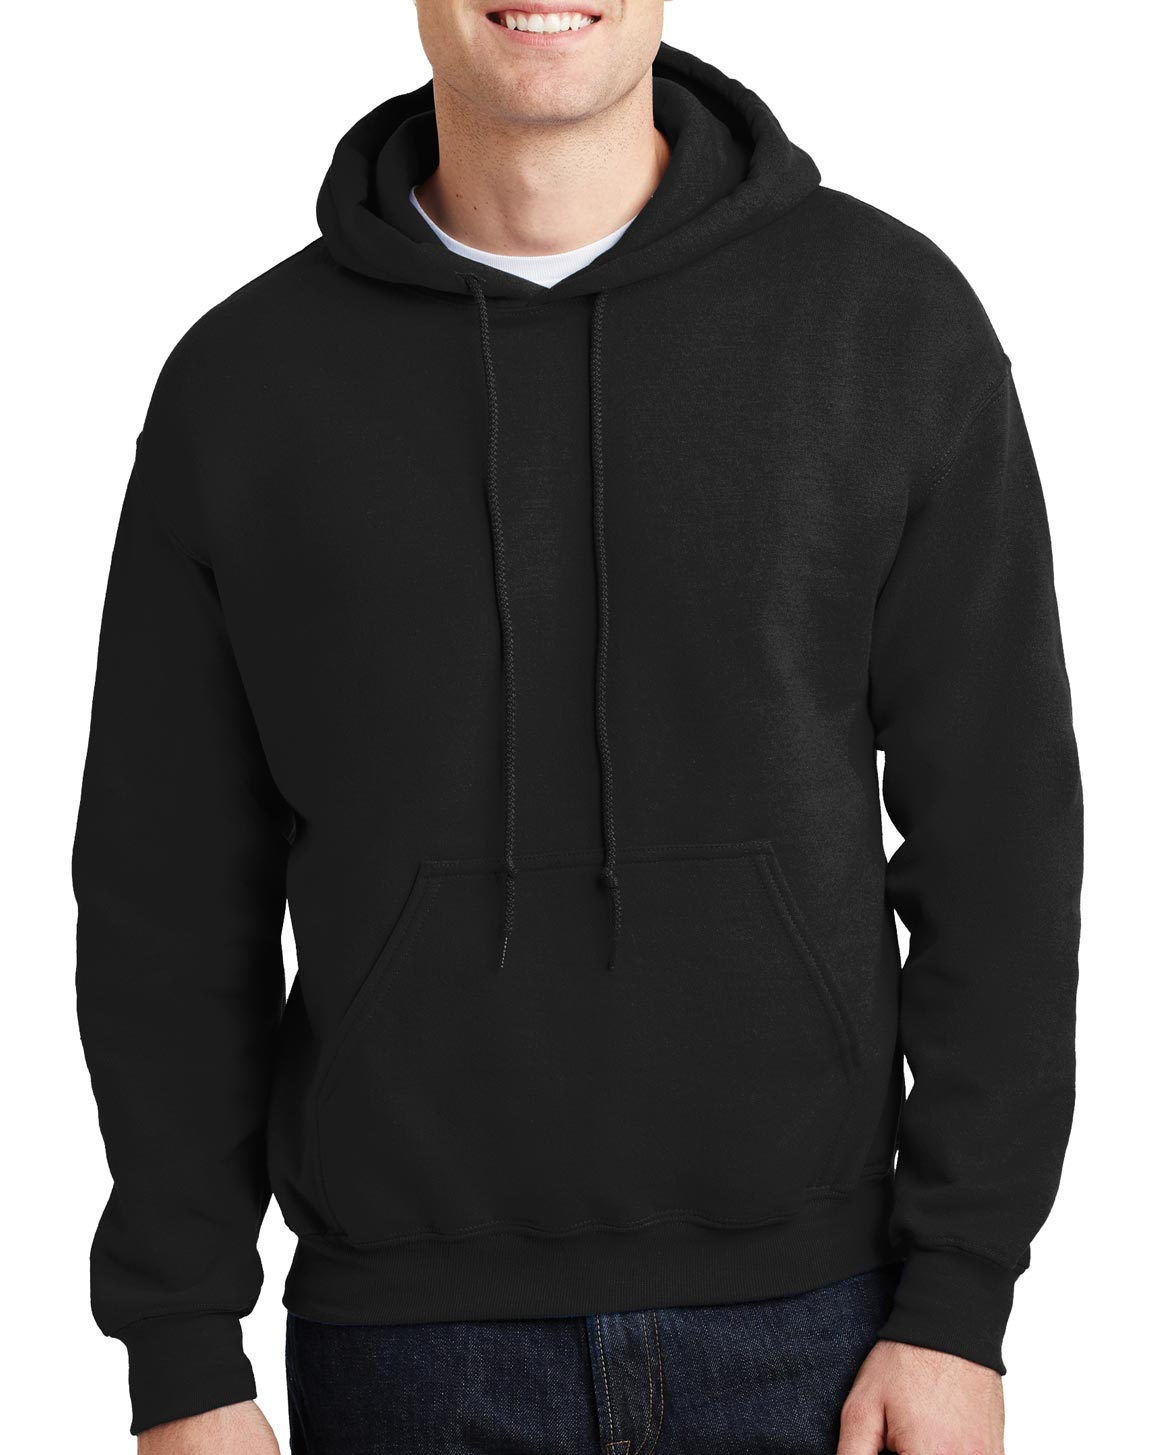 e99e600b9bec4 Gildan Adult Blend Hooded Sweatshirt - Design Online or Buy It Blank